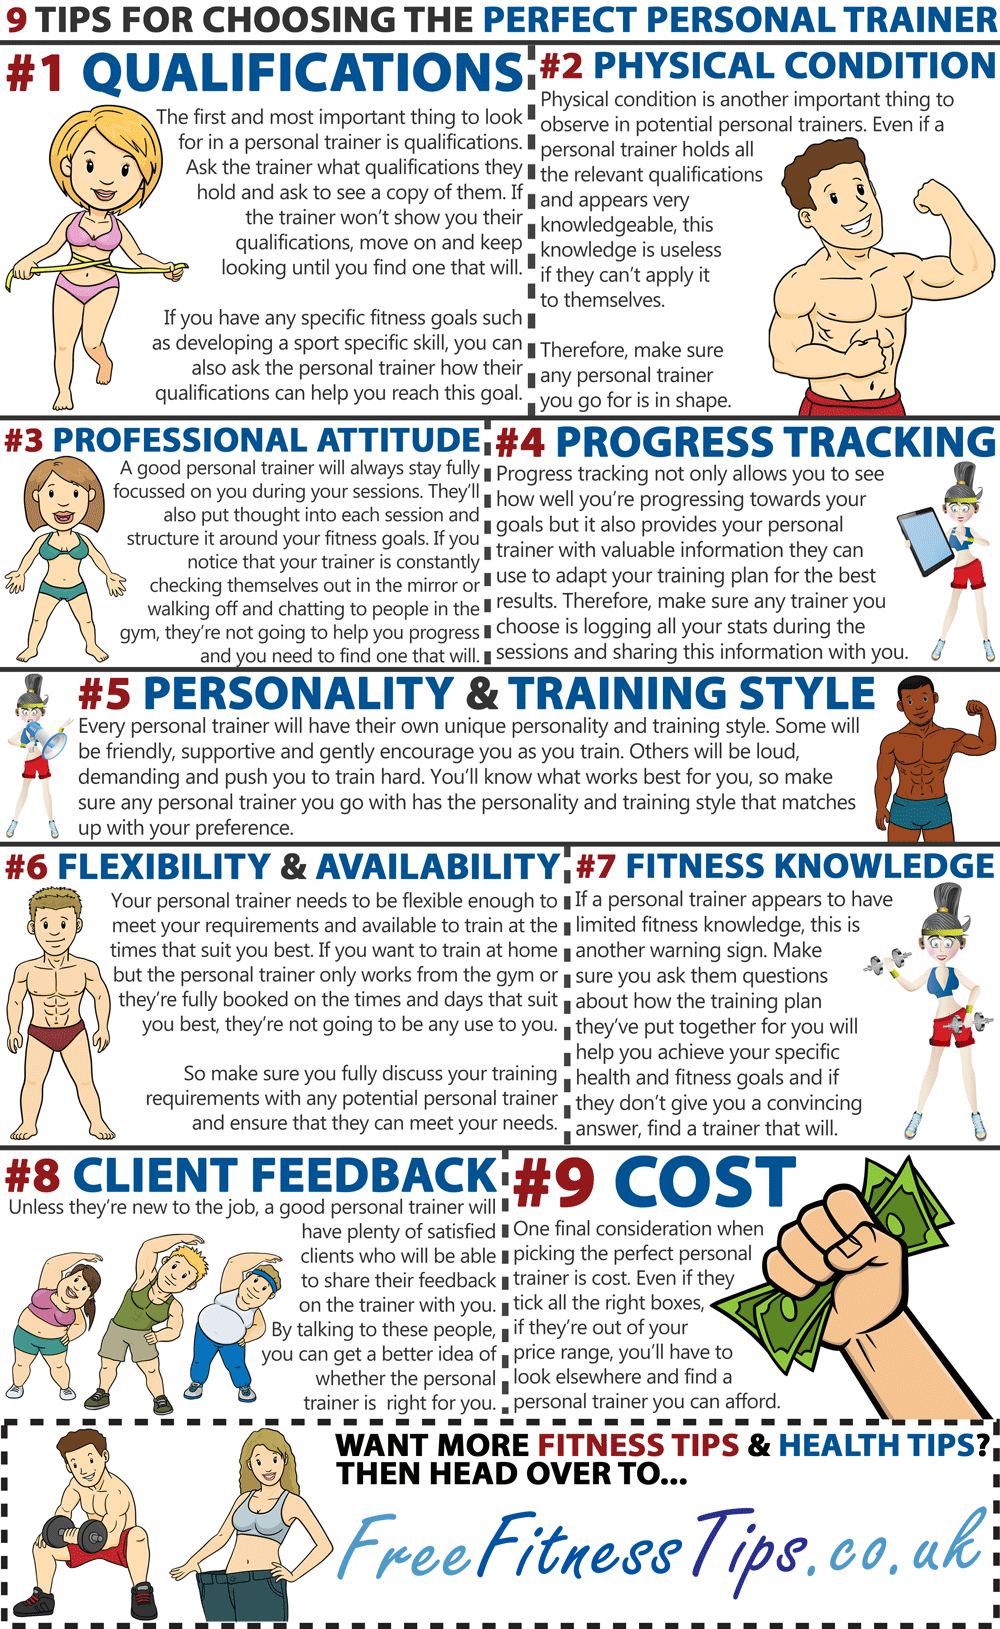 A Guide To Choosing The Perfect Personal Trainer - Infographic